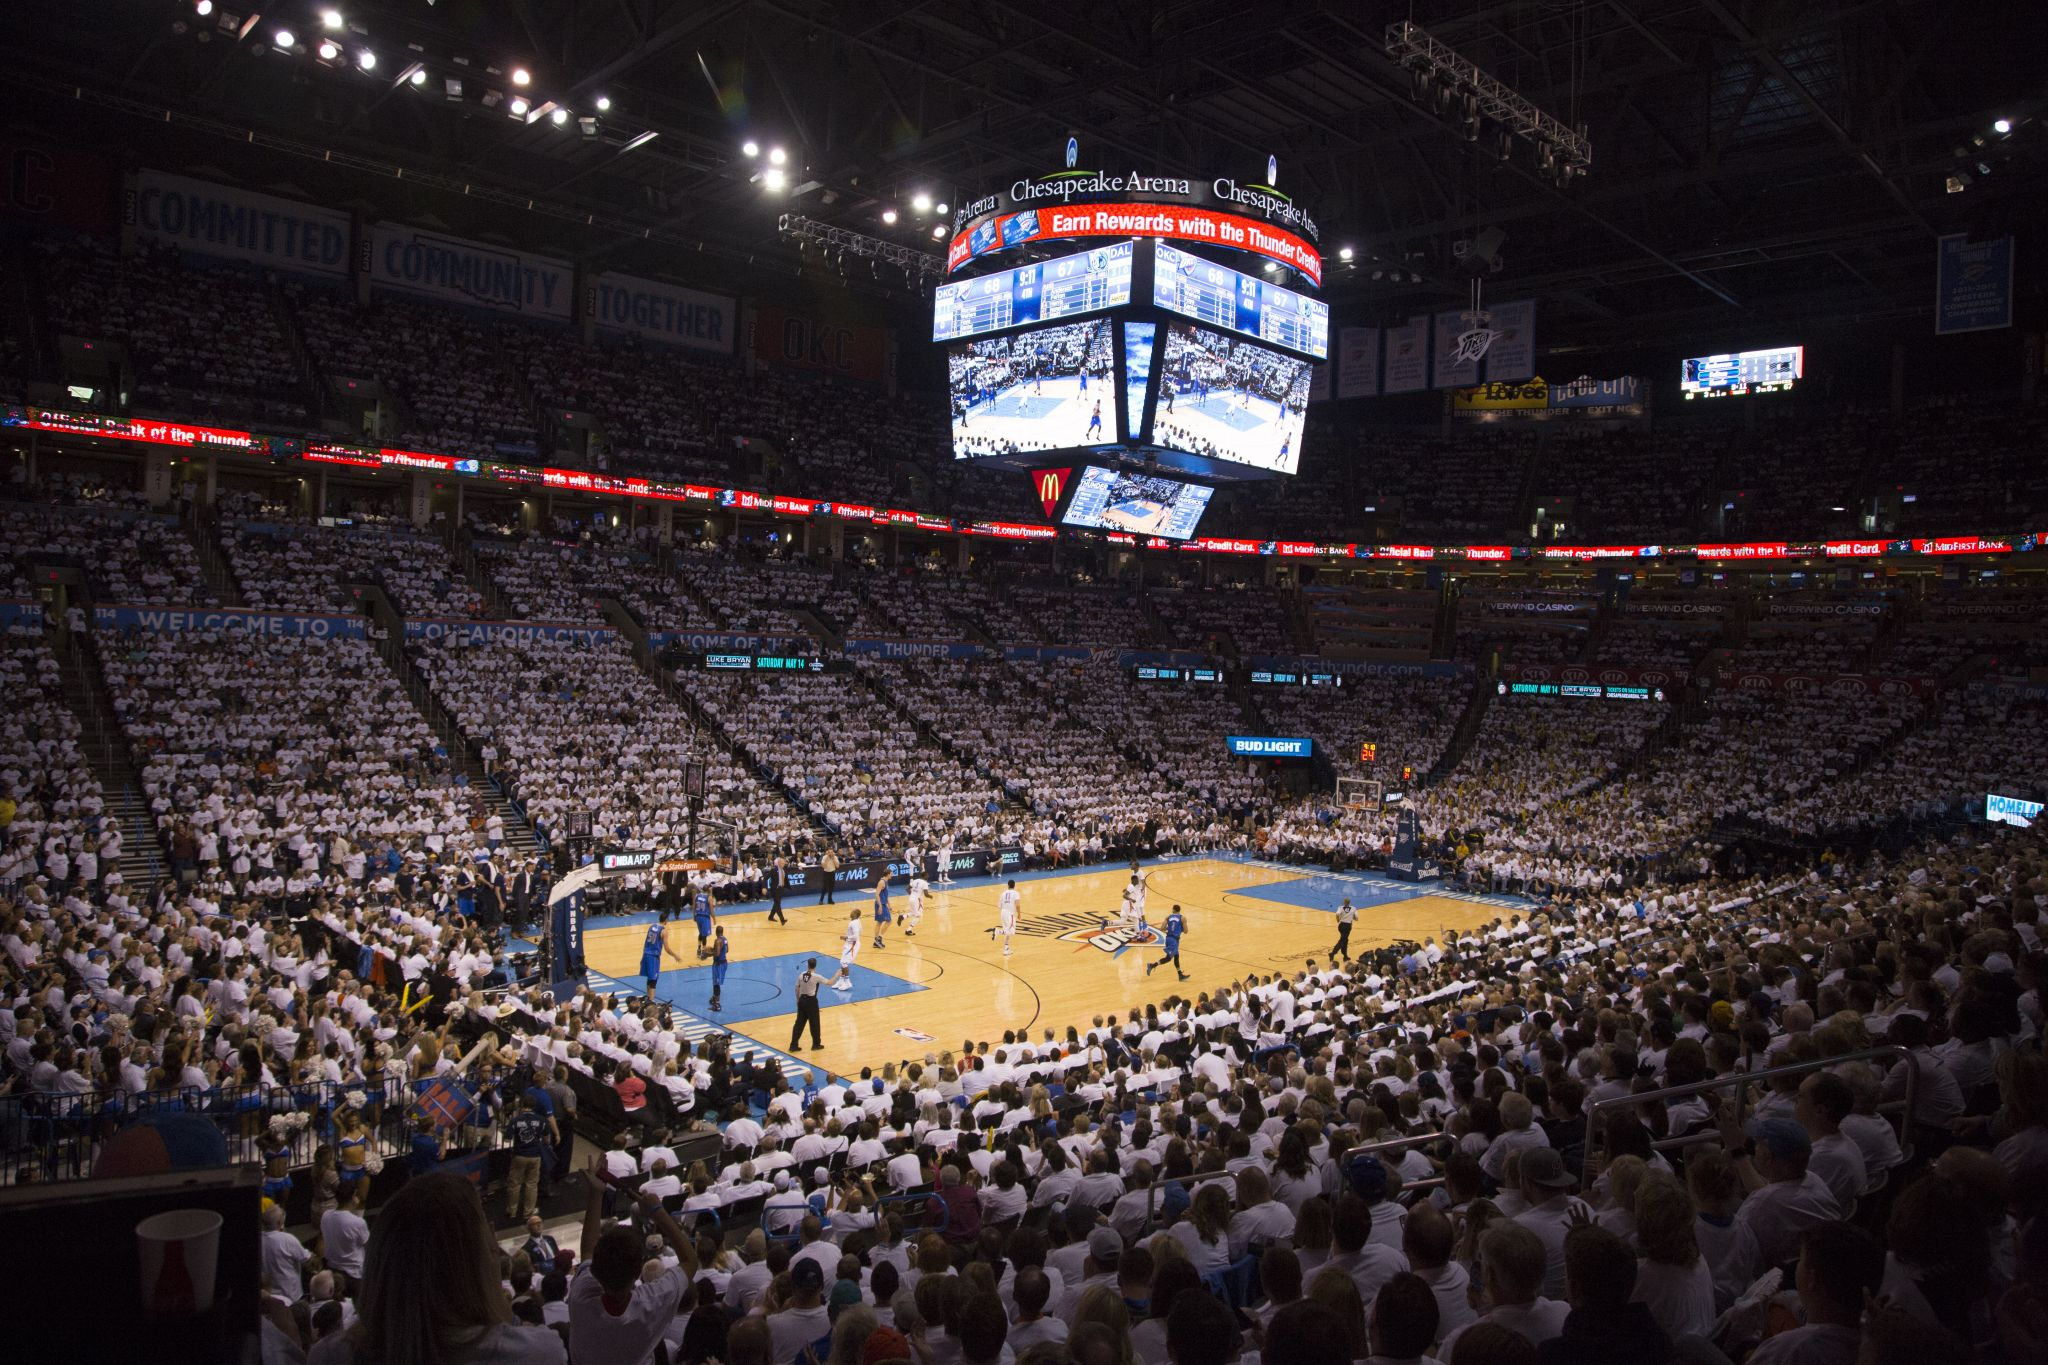 Thunder-Jazz game postponed minutes before tip-off, fans told to leave arena as virus fears rise